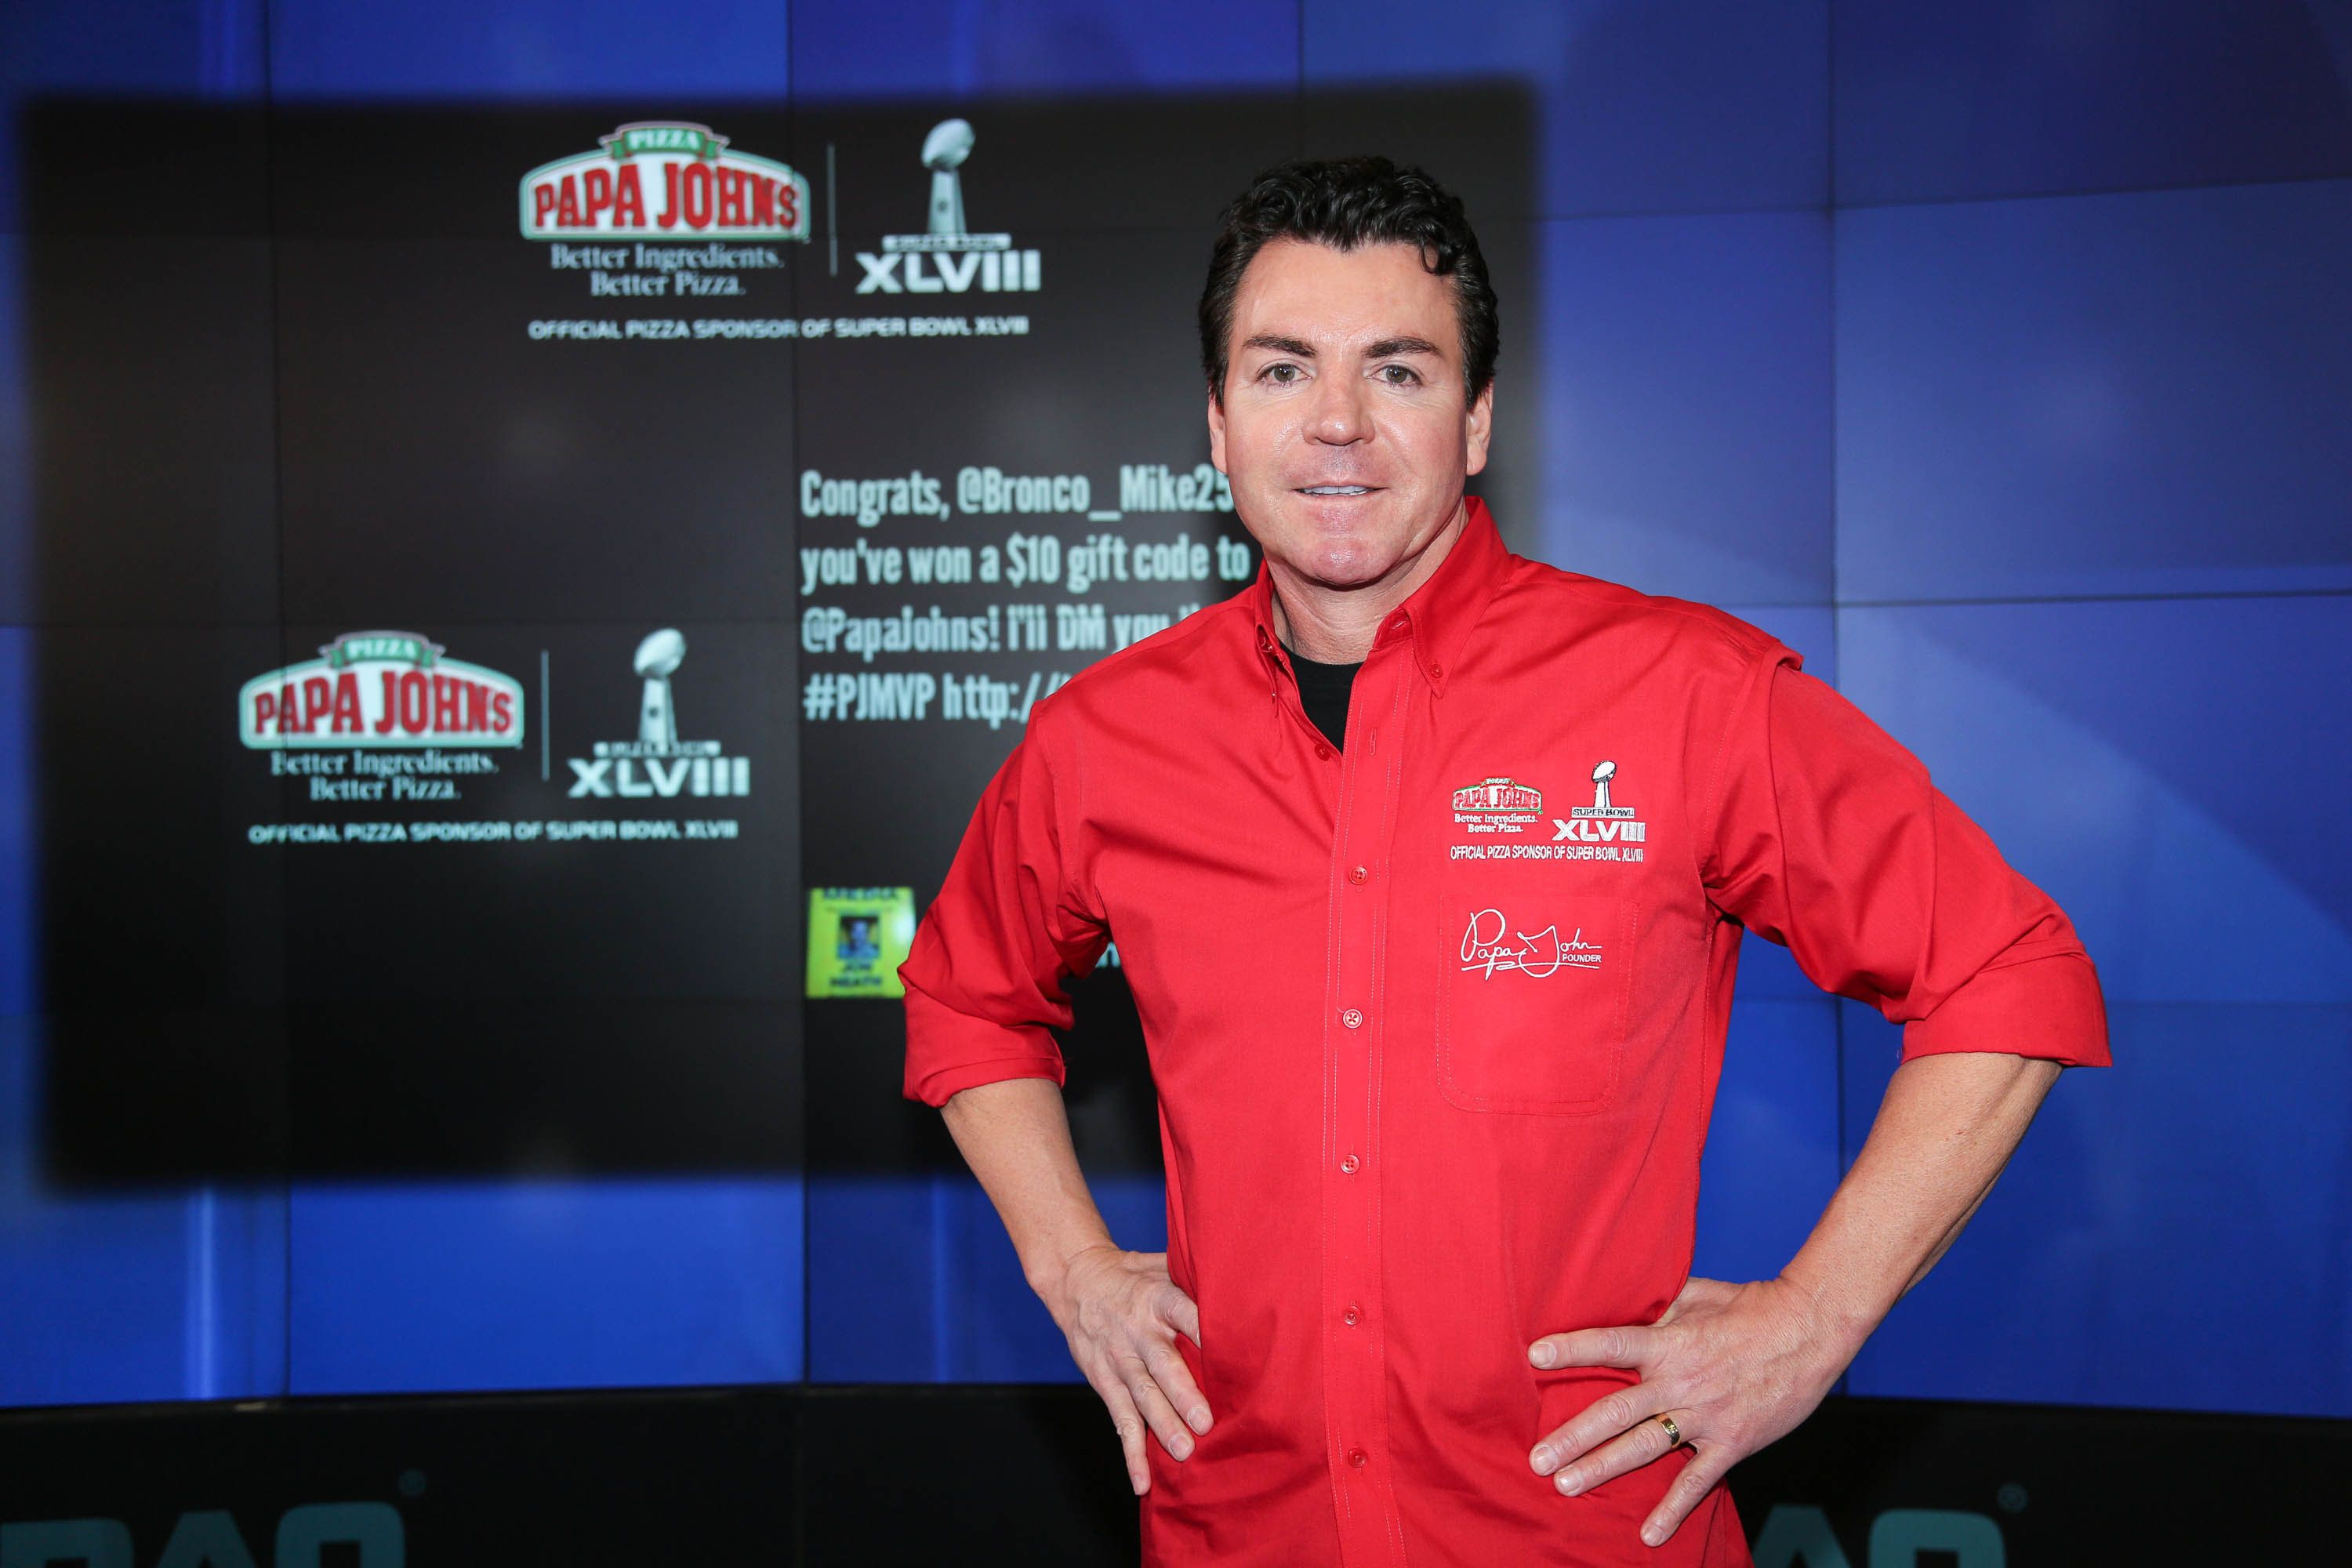 Papa John's John Schnatter Allegedly Used Racial Slur On Conference Call